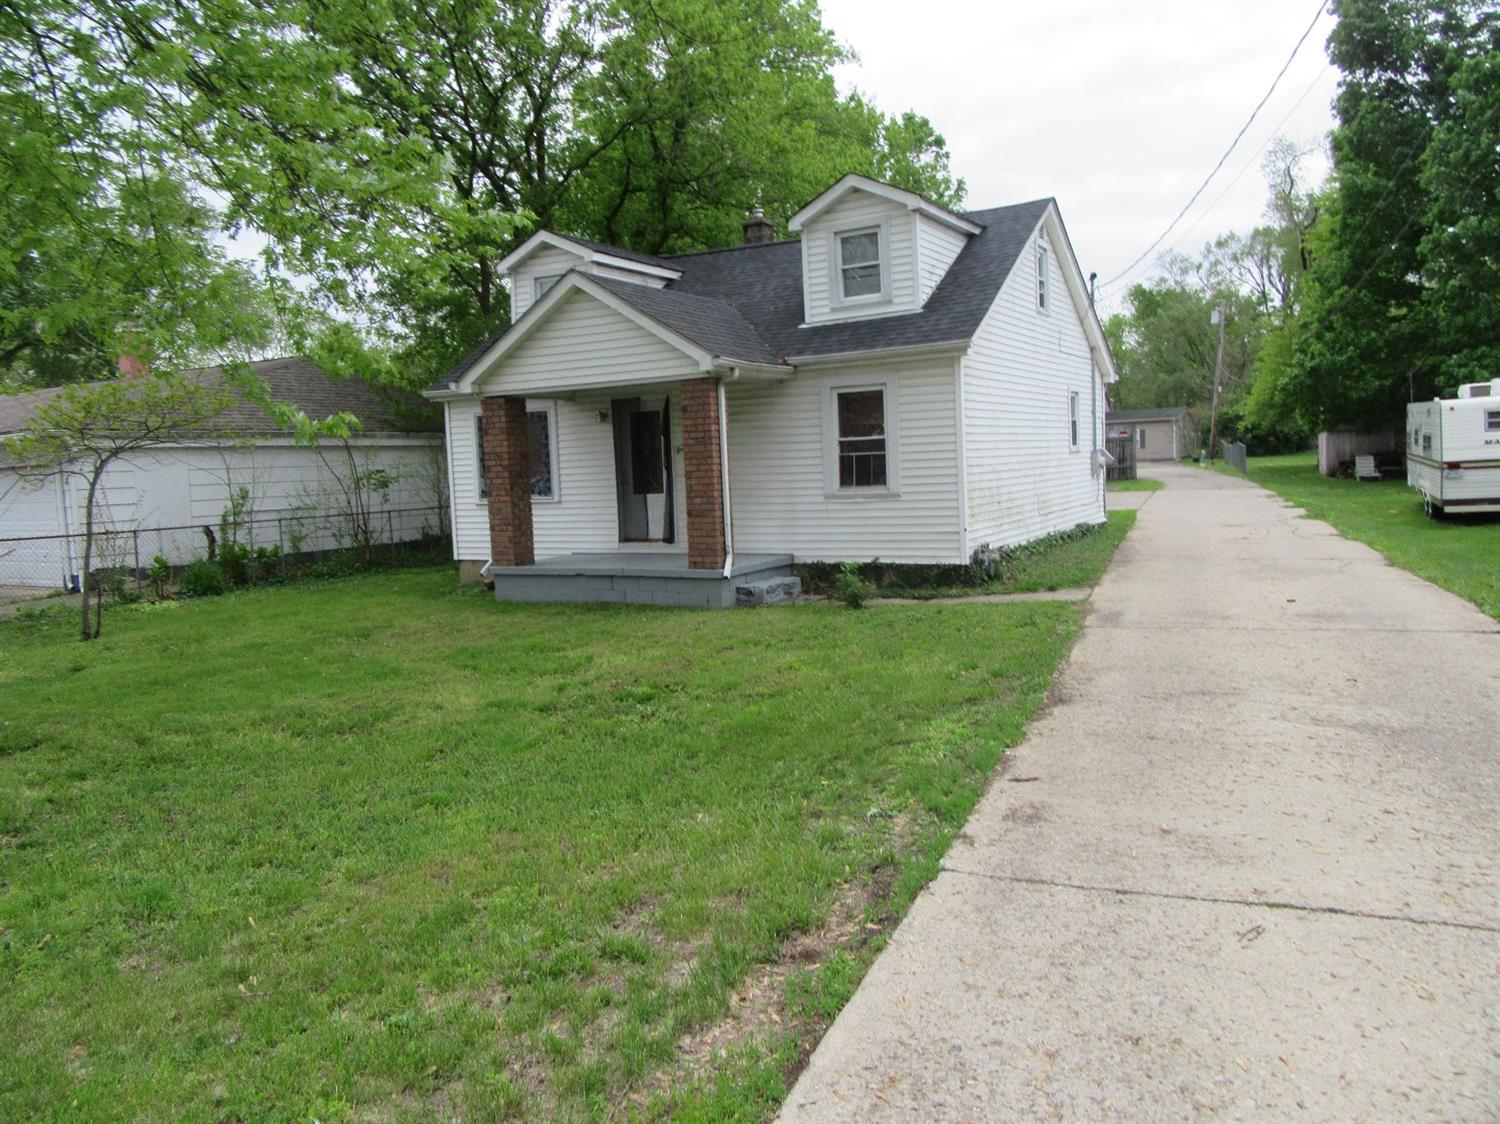 Property for sale at 8791 Dayton-Oxford Run, Franklin Twp,  Ohio 45005